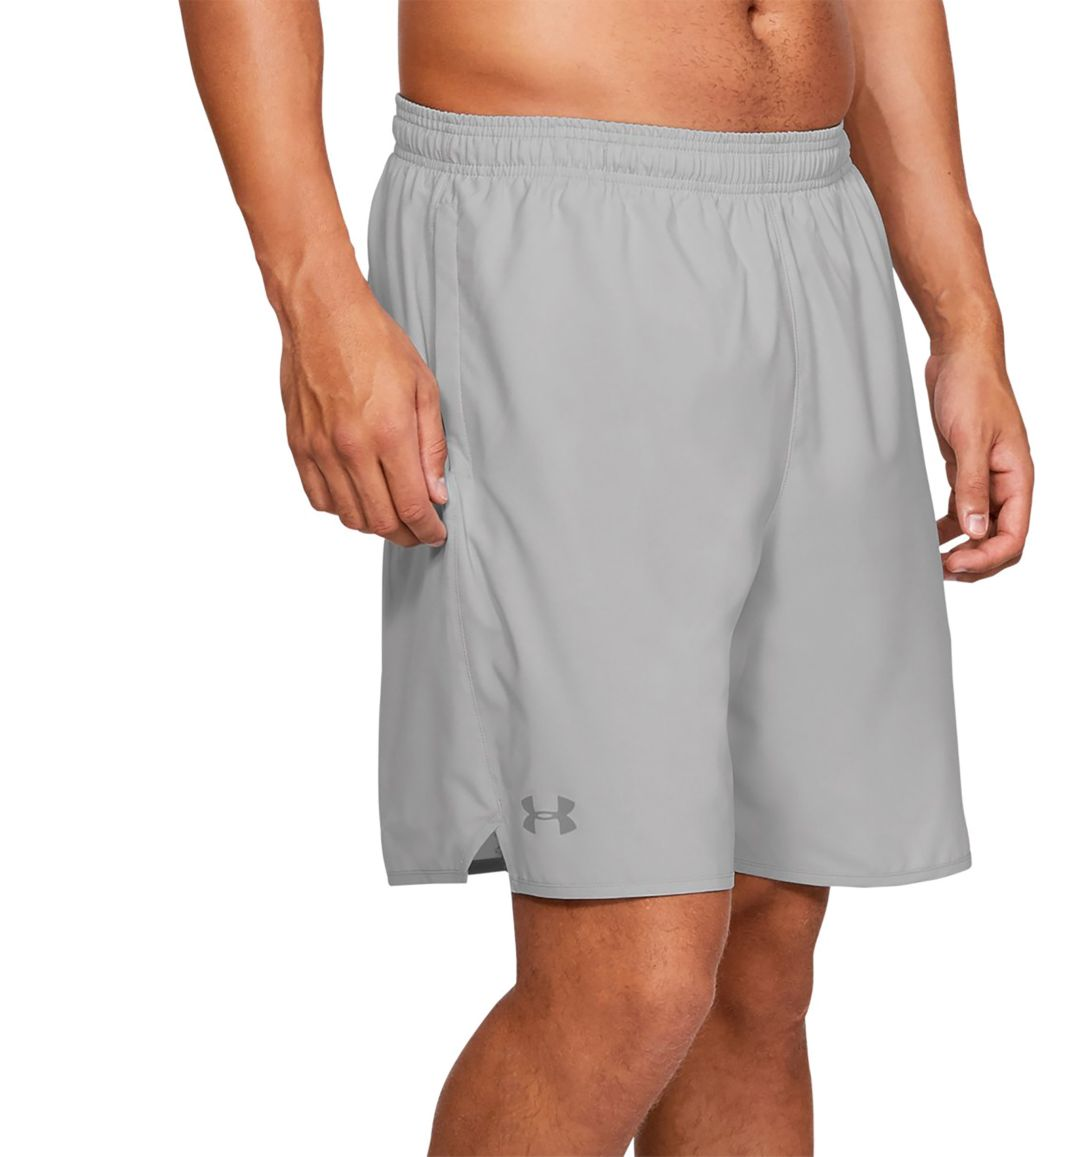 d63a8c91b8 Under Armour Men's Dockside Volley Shorts